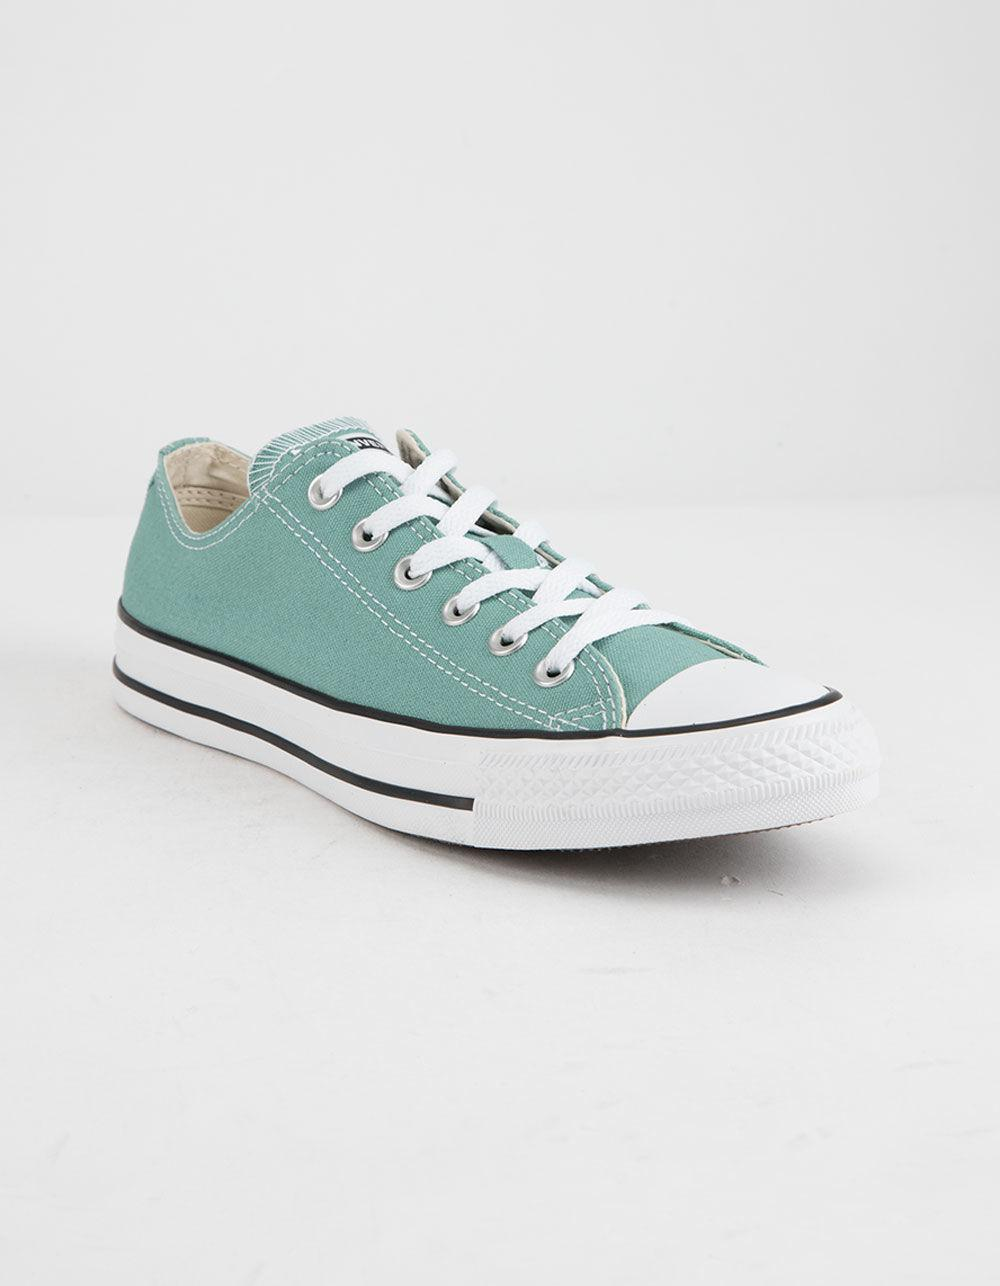 c9a1bbbaf9b Lyst - Converse Chuck Taylor All Star Mineral Teal Low Top Womens Shoes in  Blue